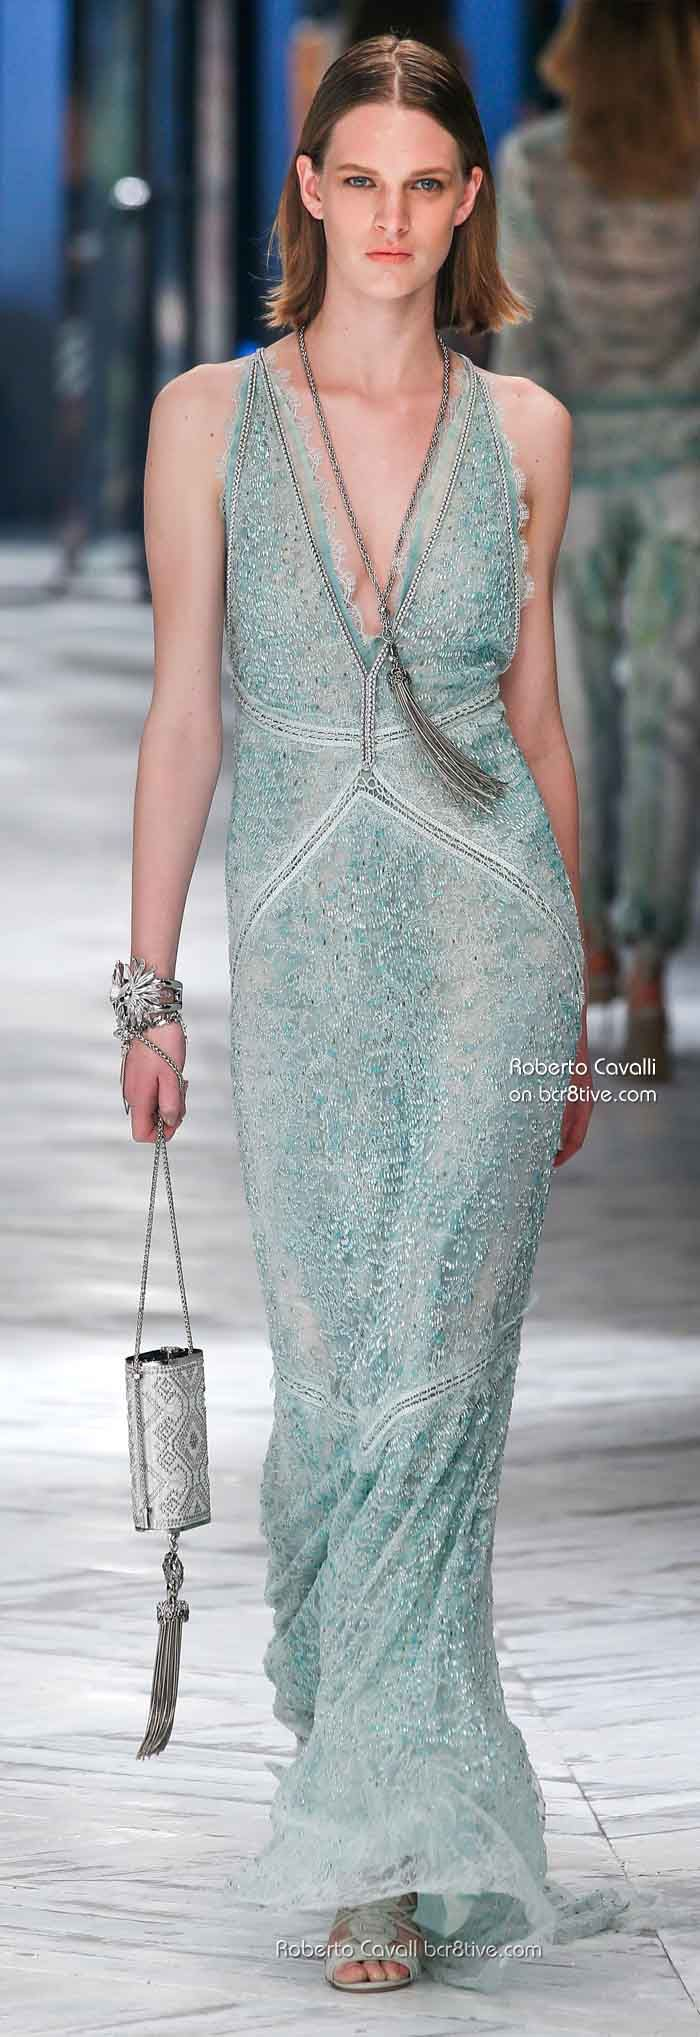 Roberto Cavalli Spring 2014....no need to apologize! He's the ultimate bohemian haute couturier!